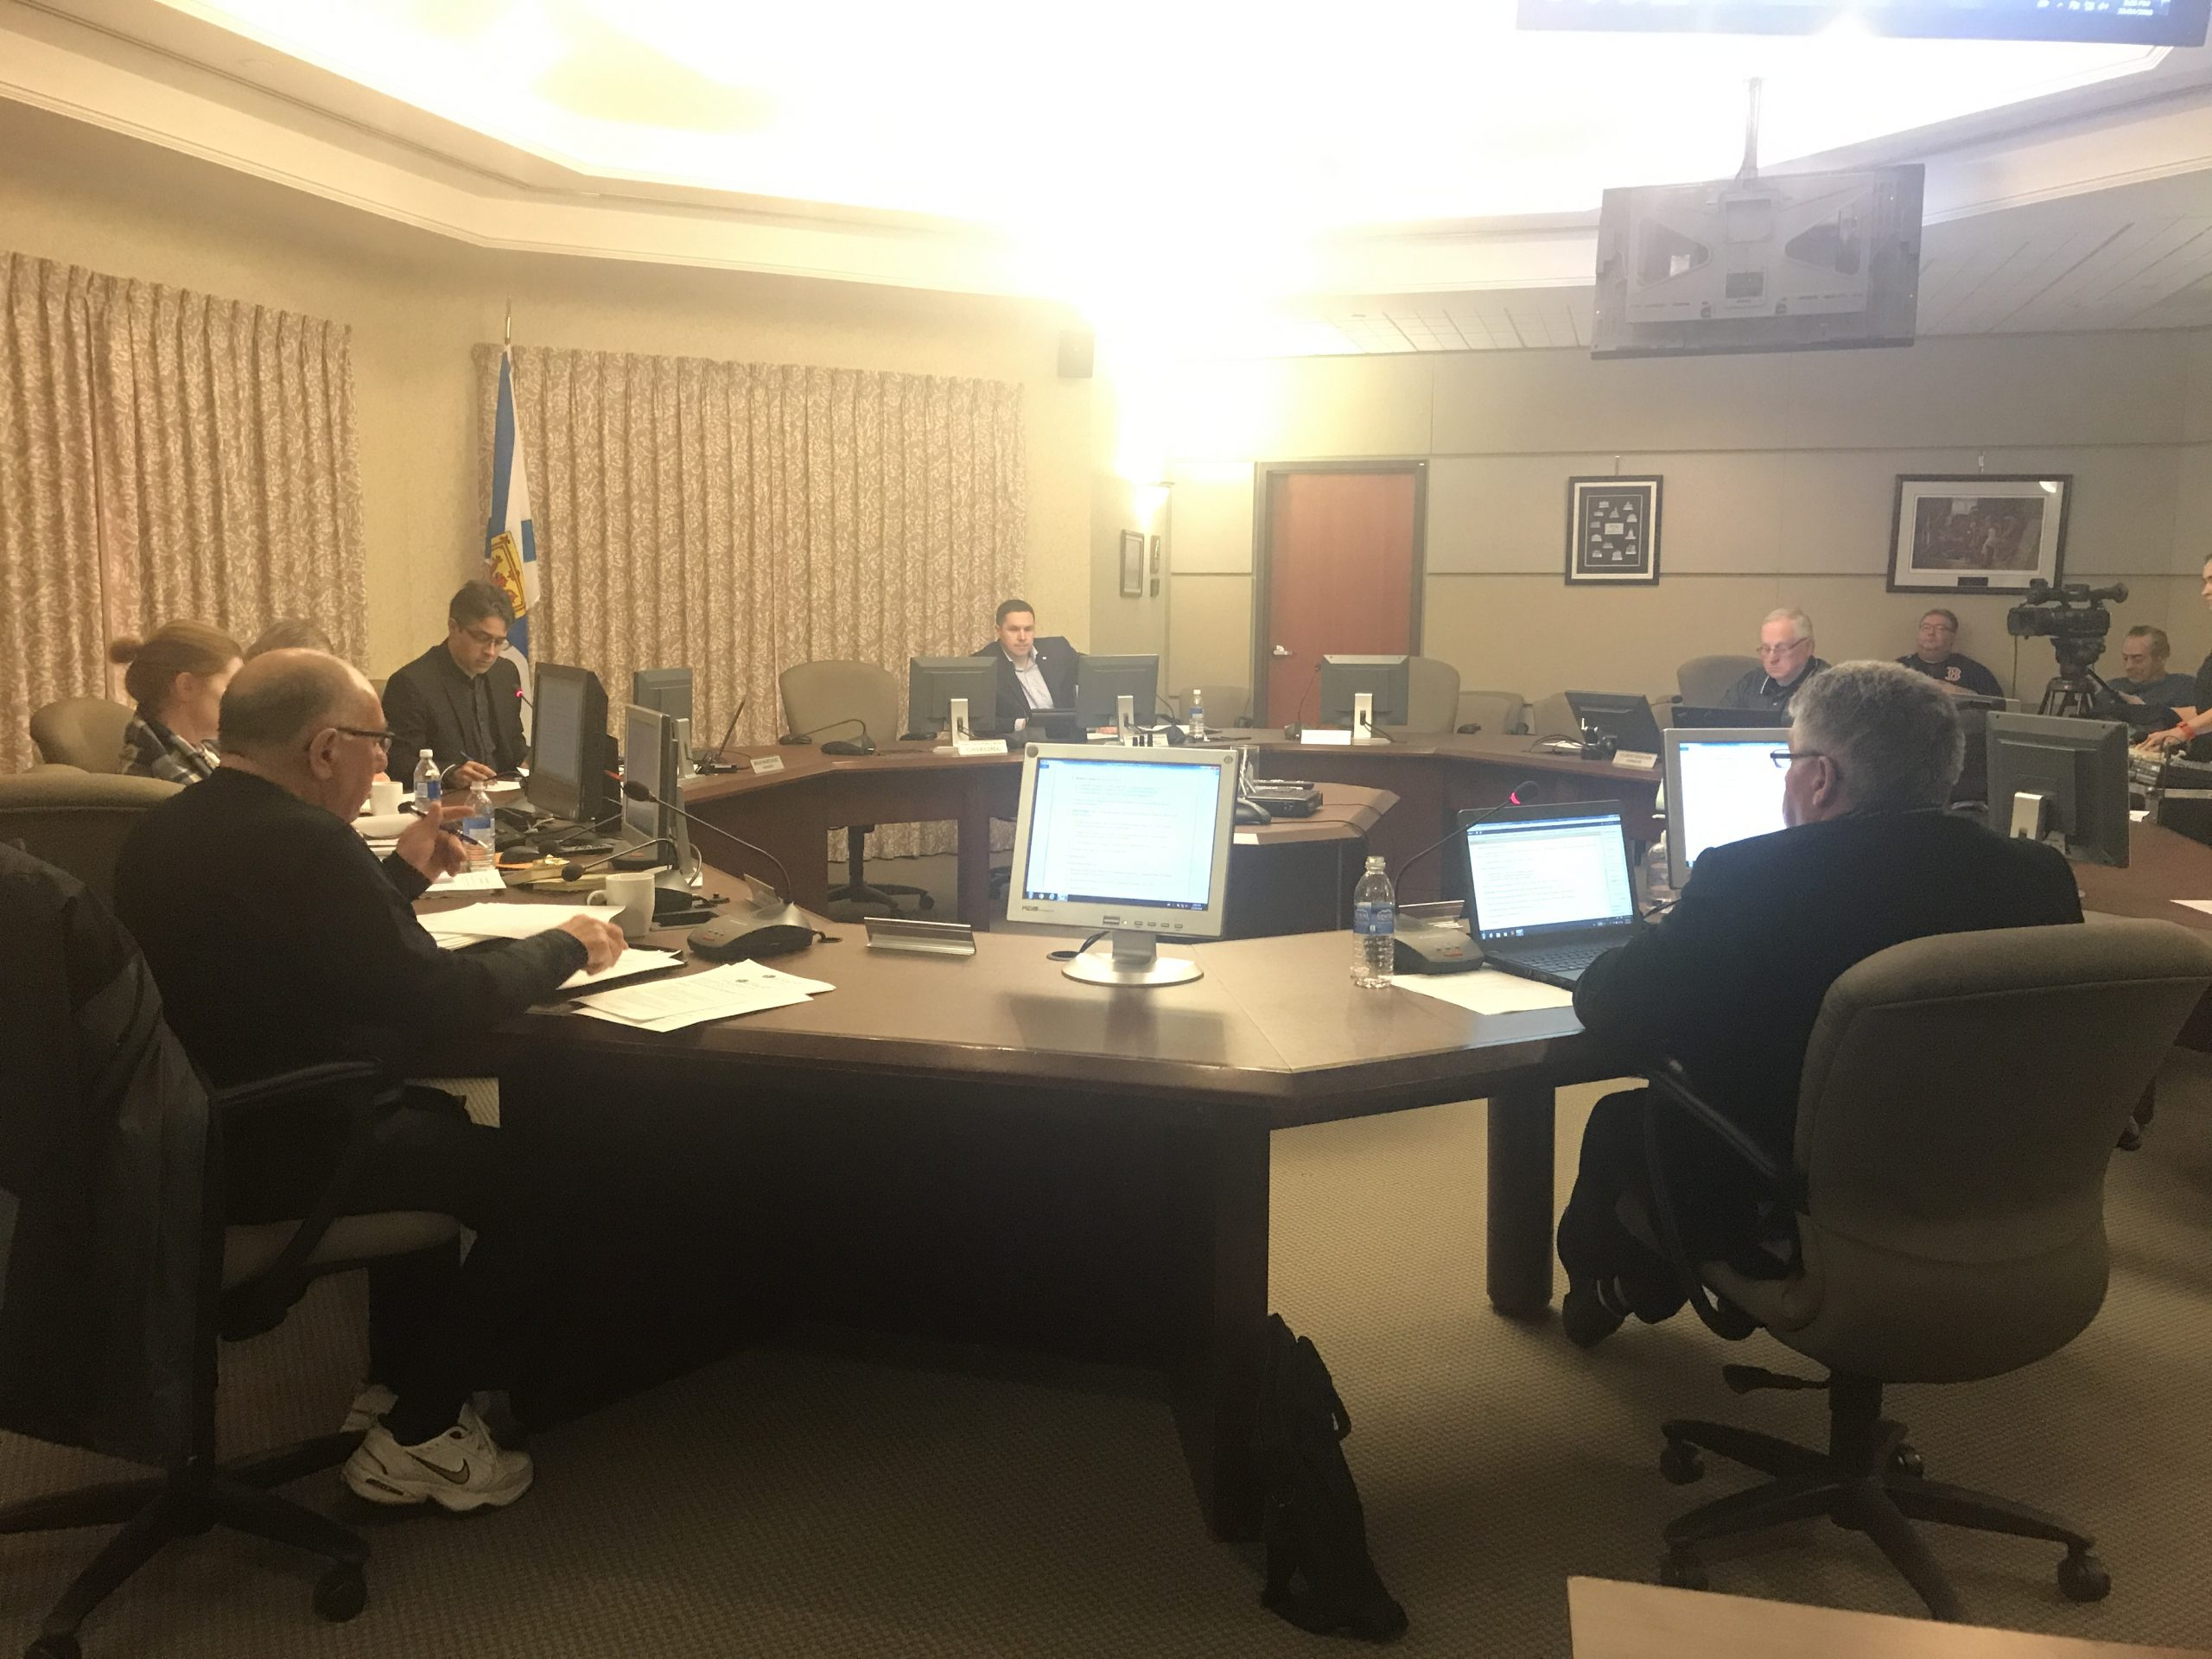 Warden says they hope to hold last budget deliberation meeting Tuesday